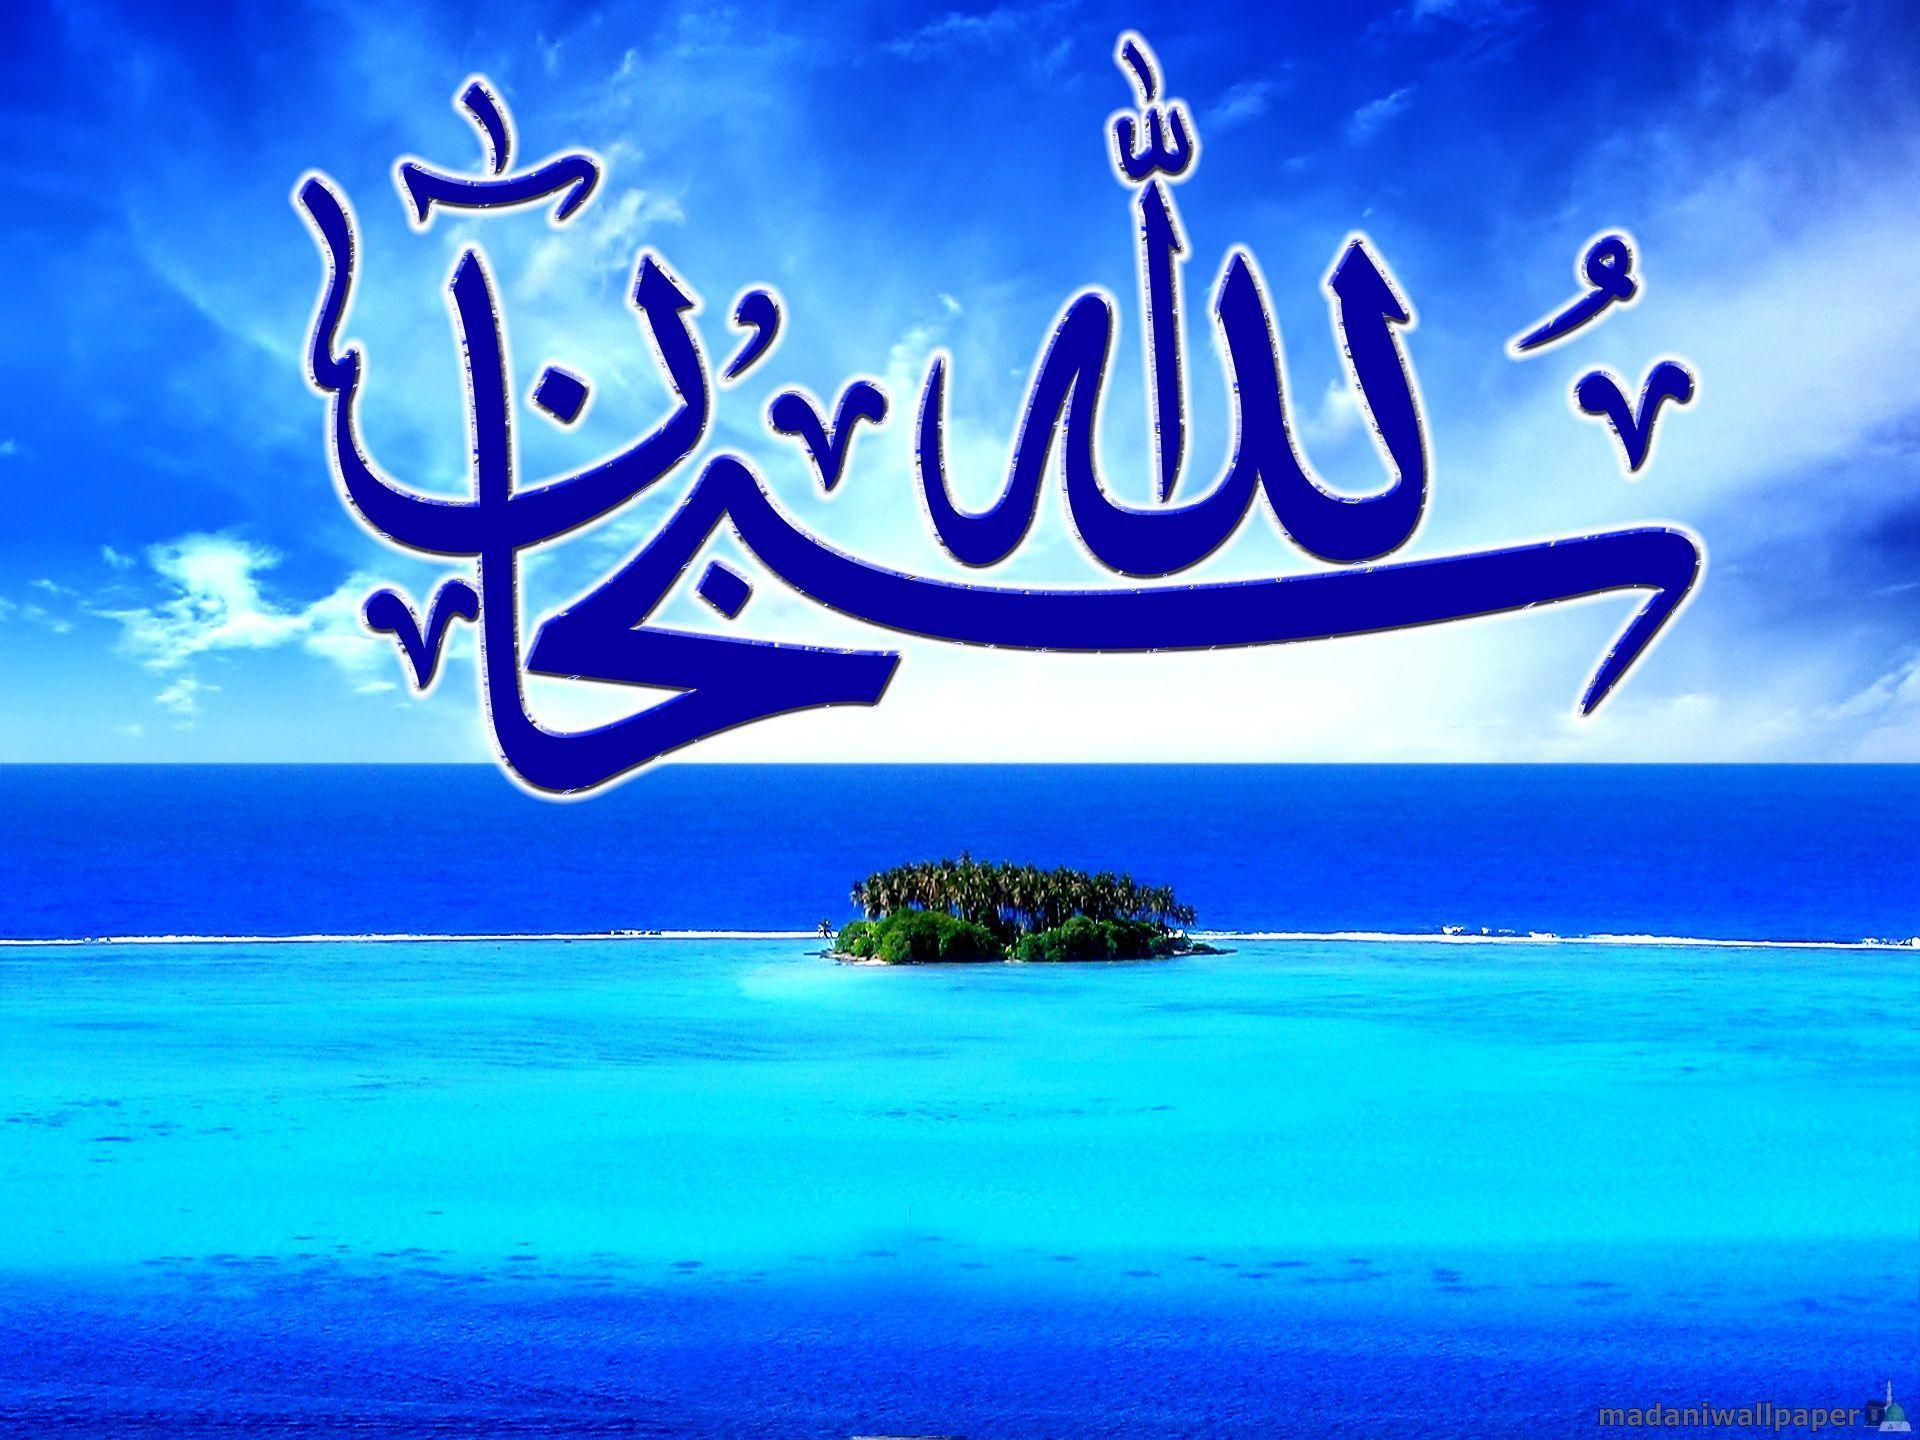 Message of Peace : Subhan Allah Wallpapers